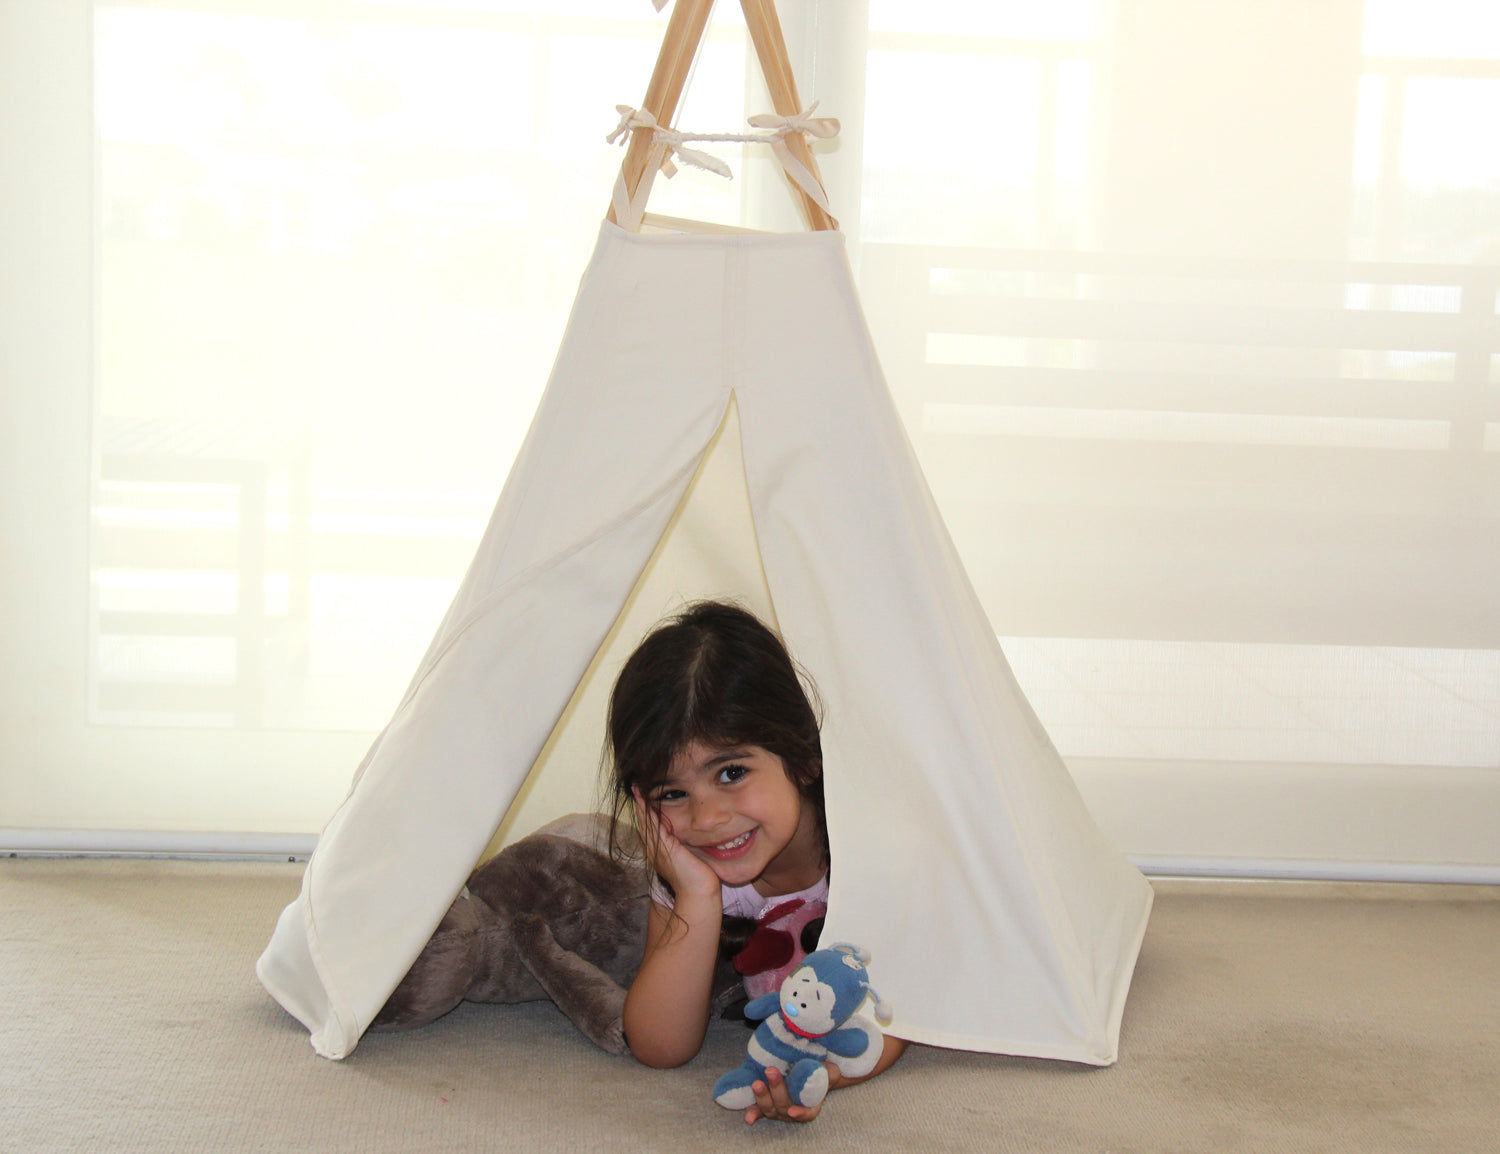 Child inside a pet teepee